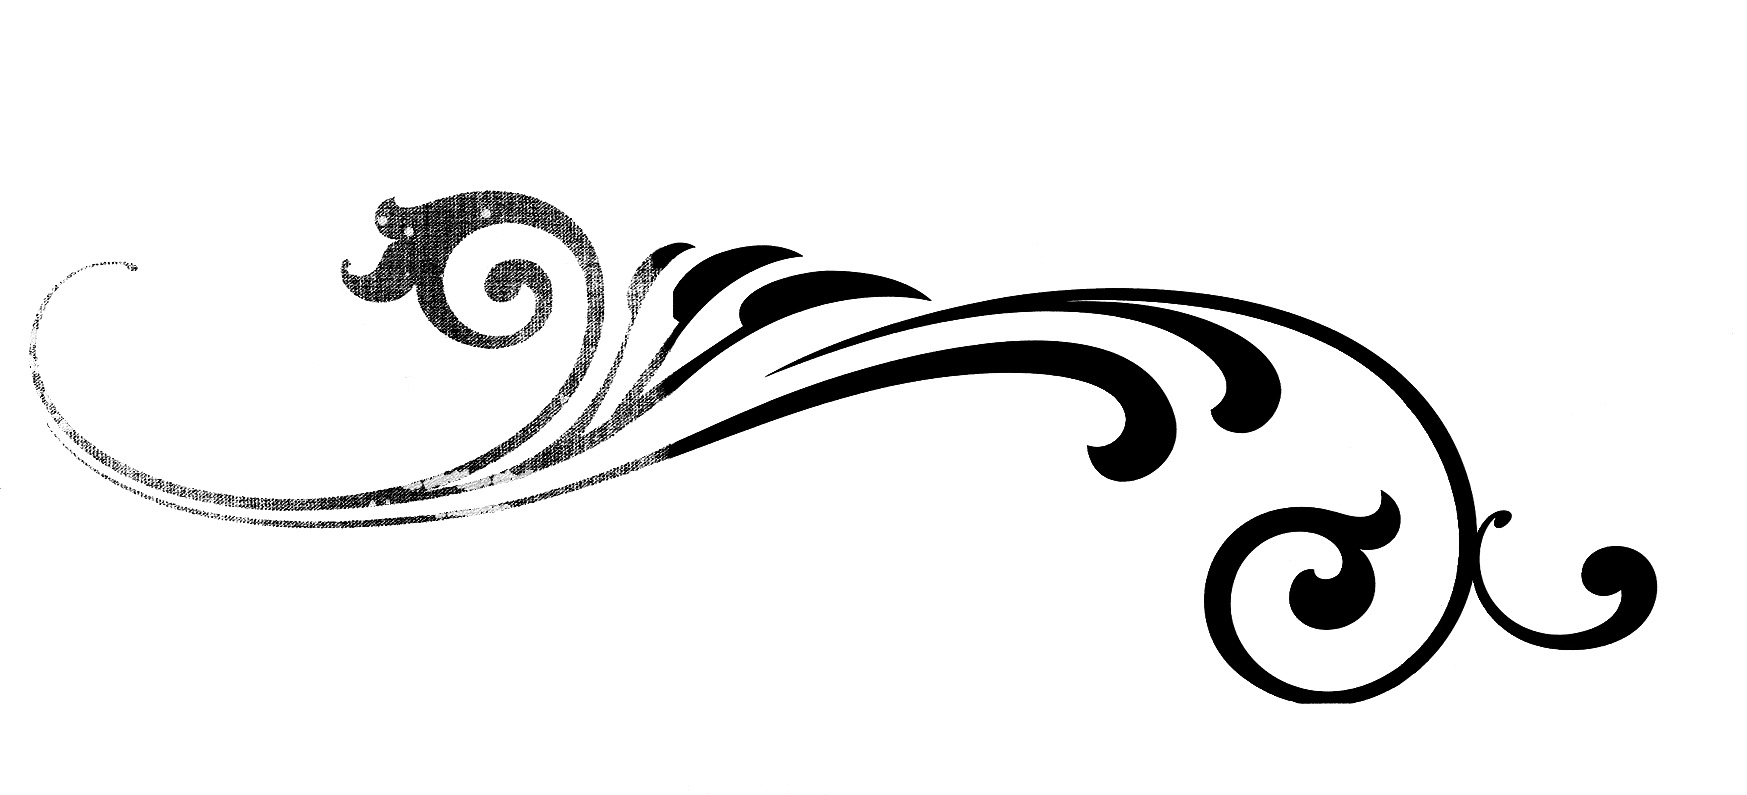 Clipart scrool flourish picture library Victorian Flourish Clipart | Free download best Victorian Flourish ... picture library